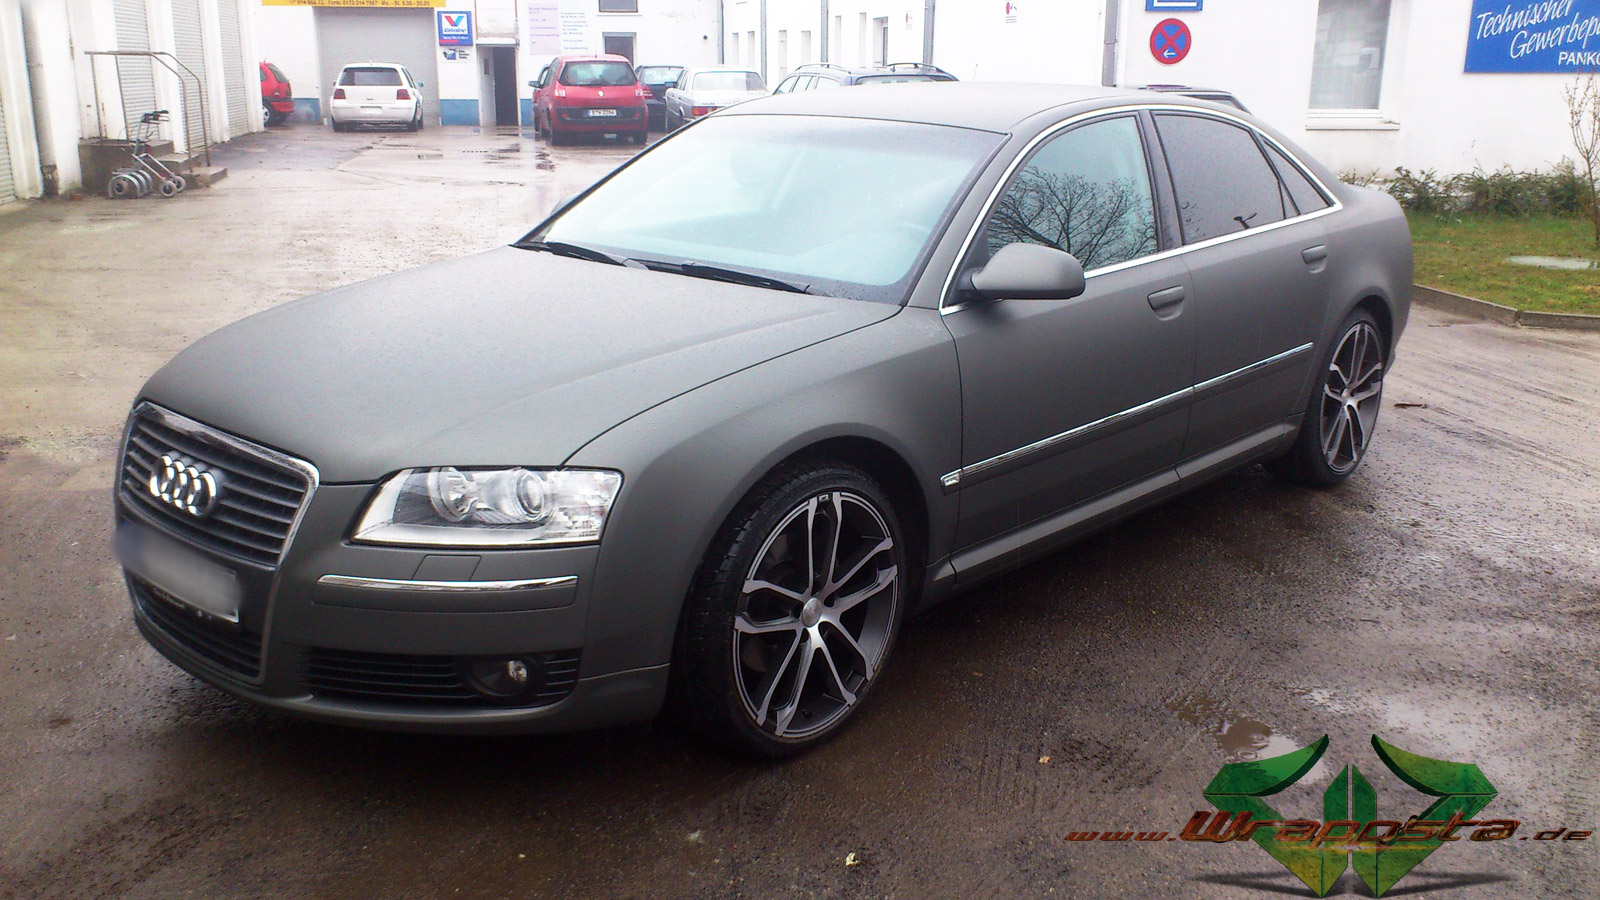 Autolack Anthrazit Metallic Matt Audi A8 - Ultra Matt Anthrazit Metallic - Wrappsta Berlin